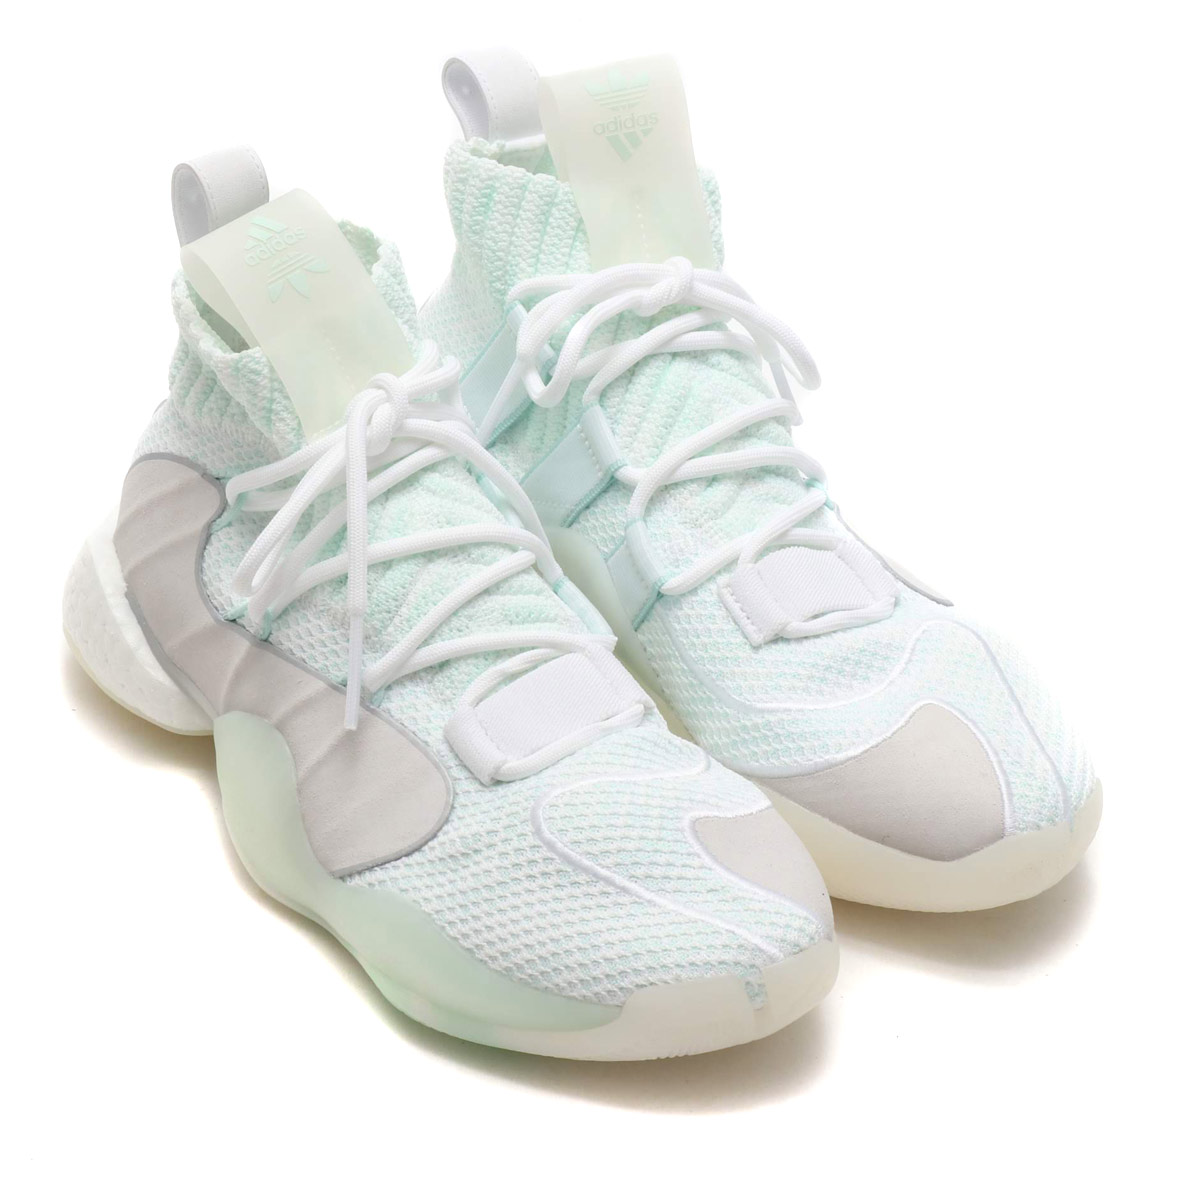 adidas Originals CRAZY BYW LVL X(アディダスオリジナルス クレイジー BYW LVL X)RUNNING WHITE/ICE MINT/TRUE ORANGE【メンズ スニーカー】19SS-I